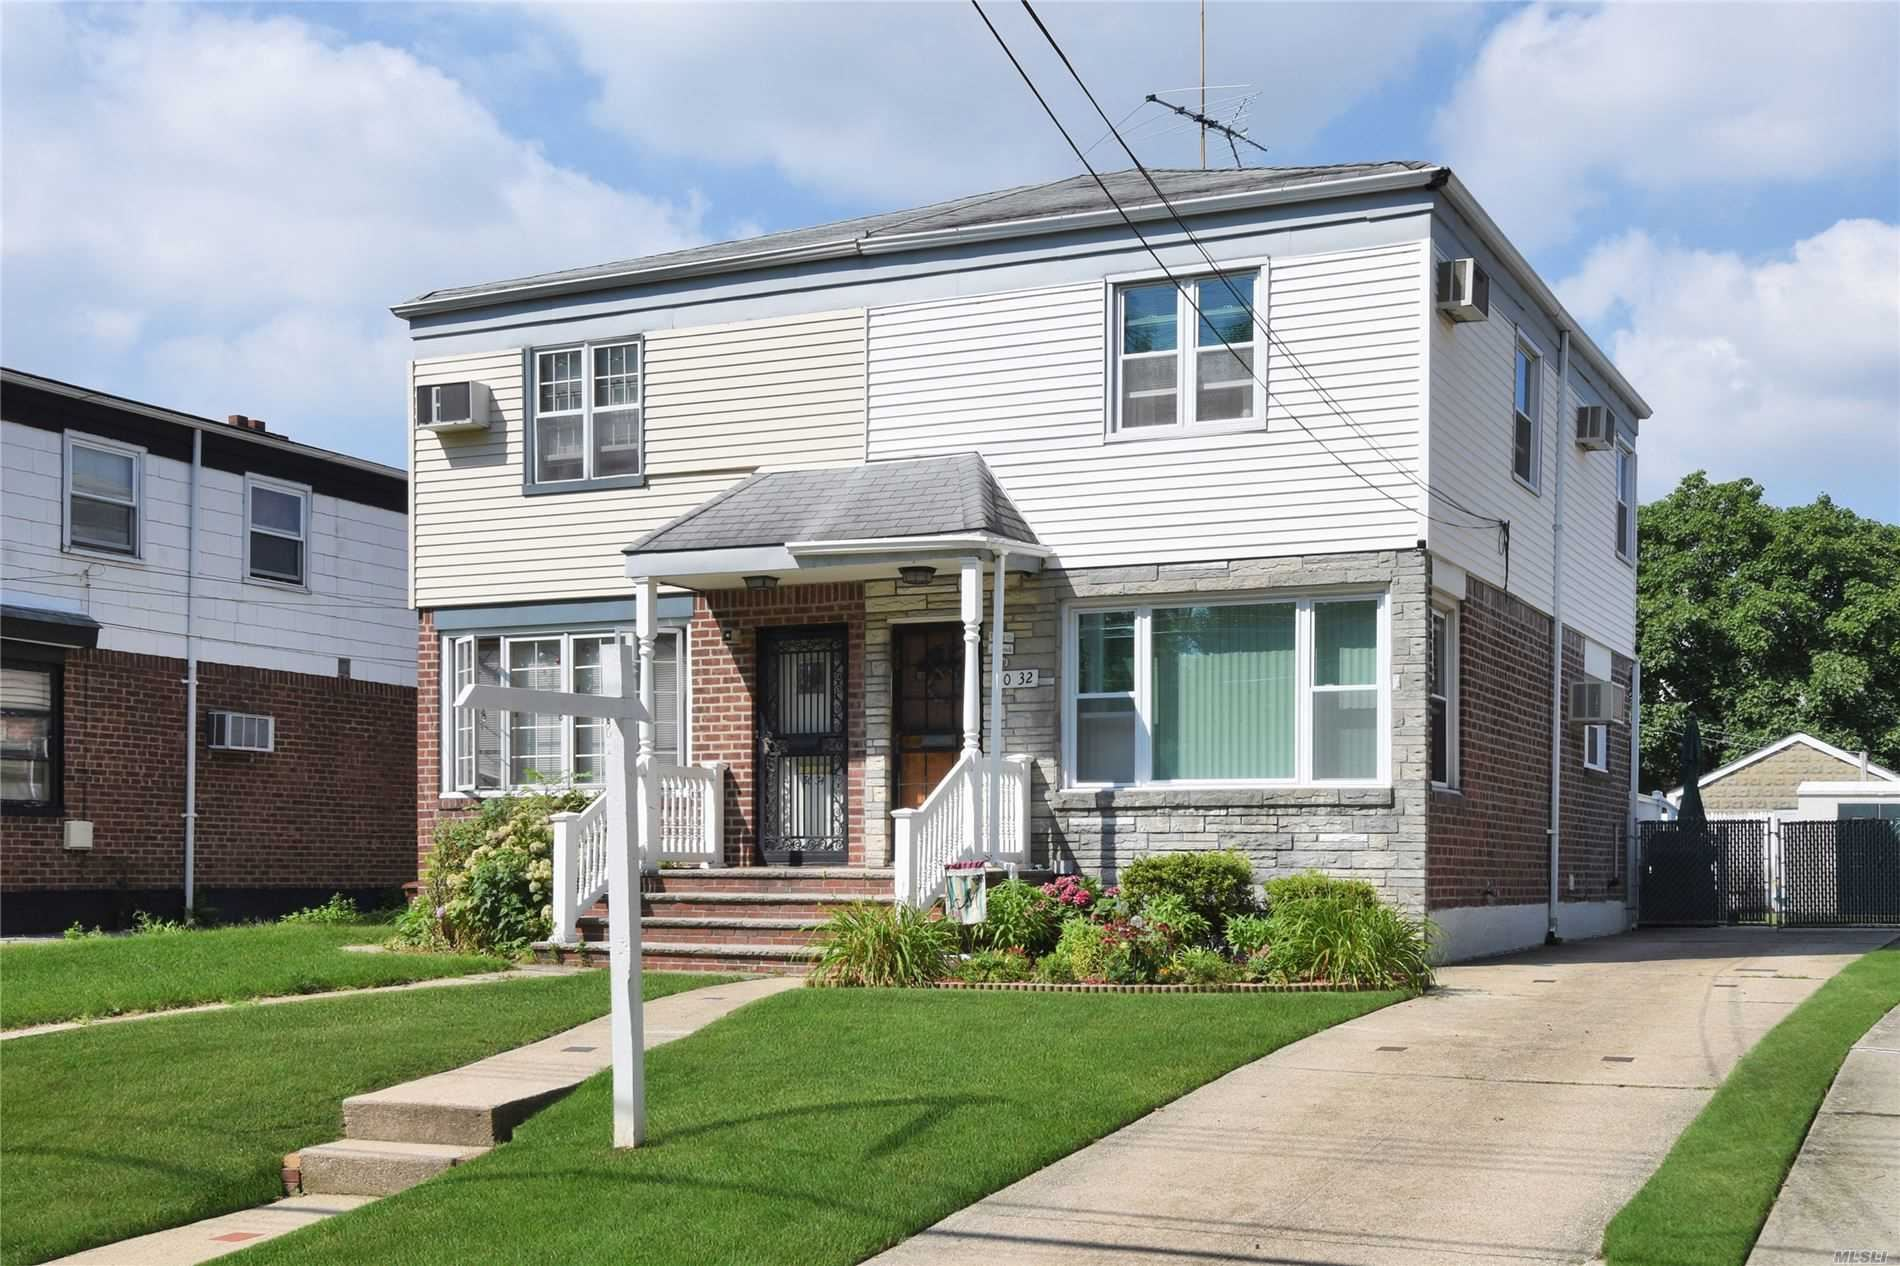 50-32 Clearview Expressway, Bayside, NY 11364 - MLS#: 3234323